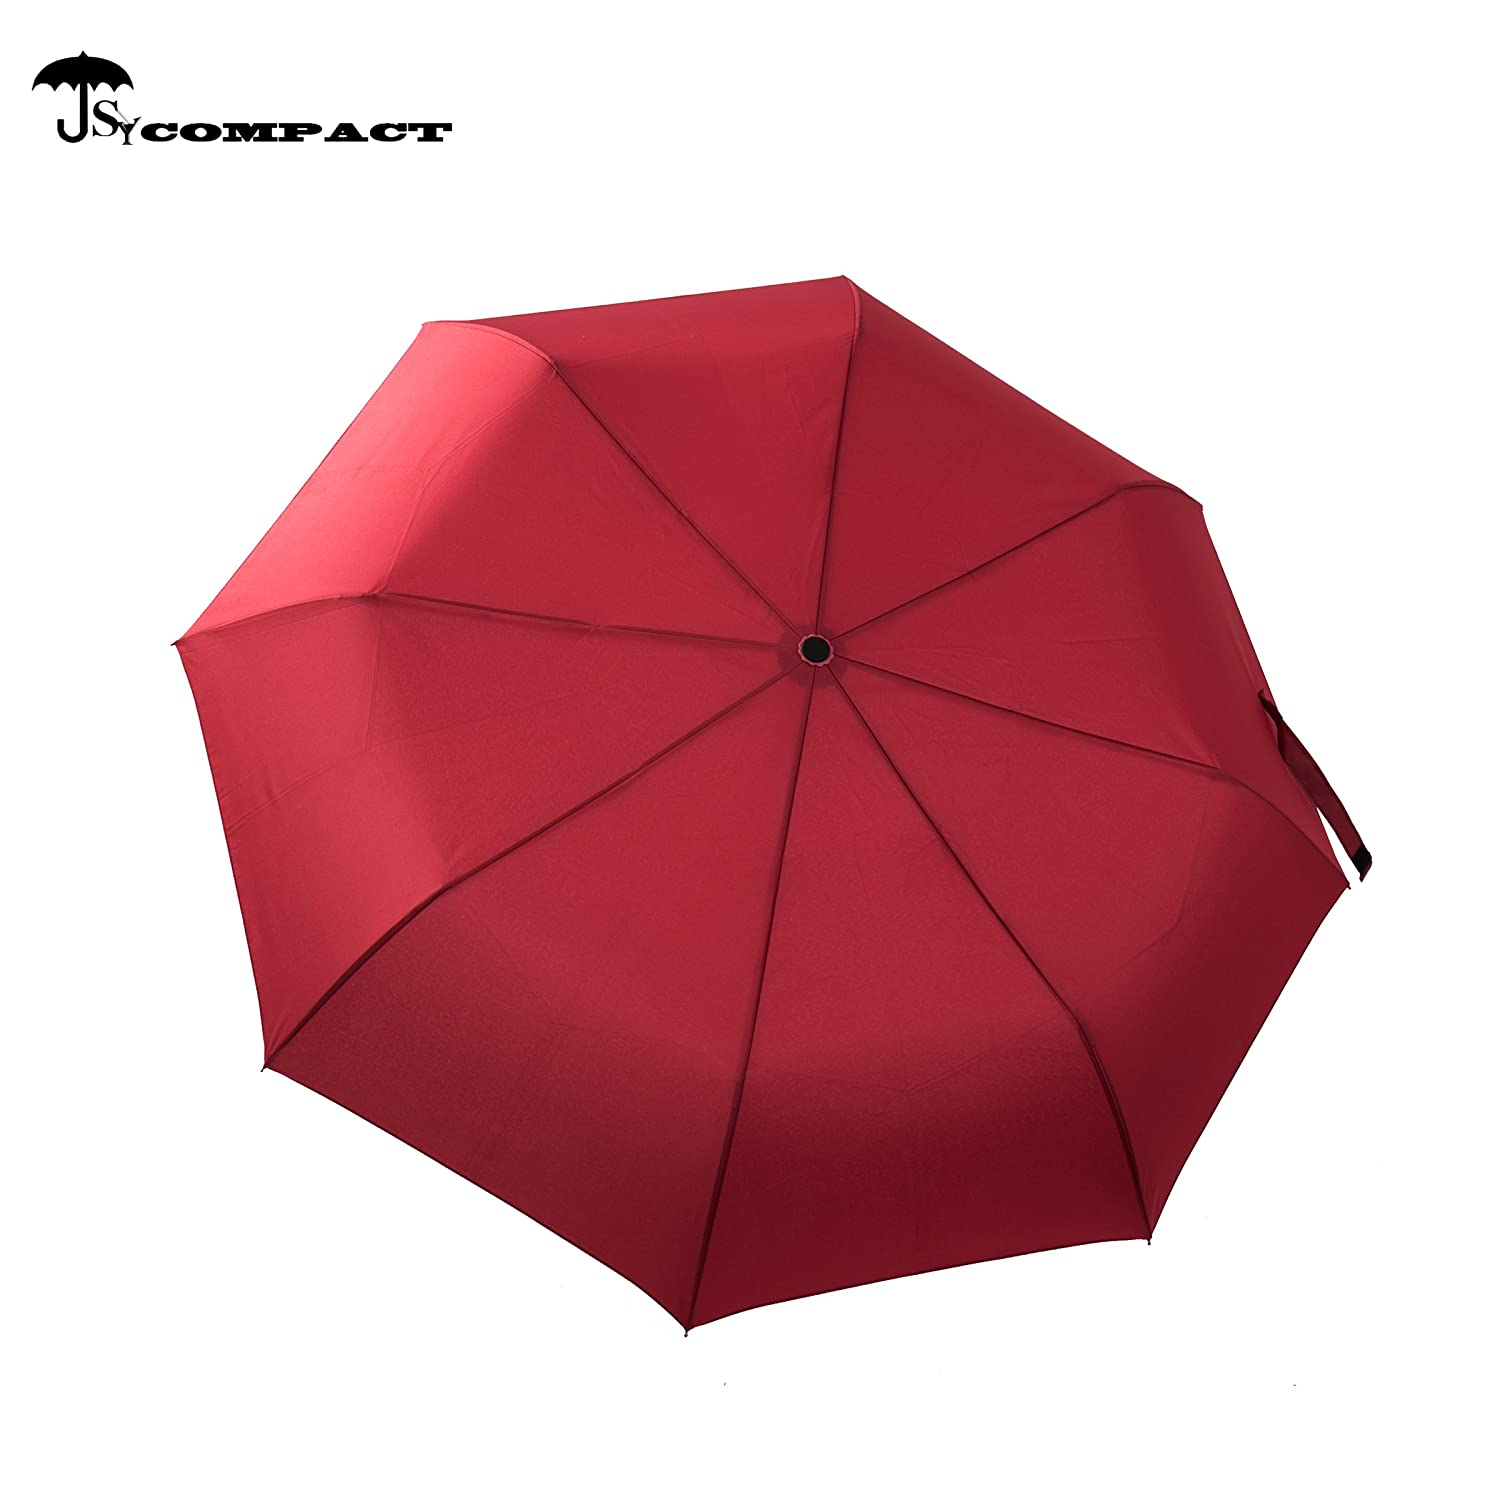 SY COMPACT Travel Umbrella Windproof Automatic Umbrellas-Factory Outlet Umbrella SY Compact Umbrella SY-3